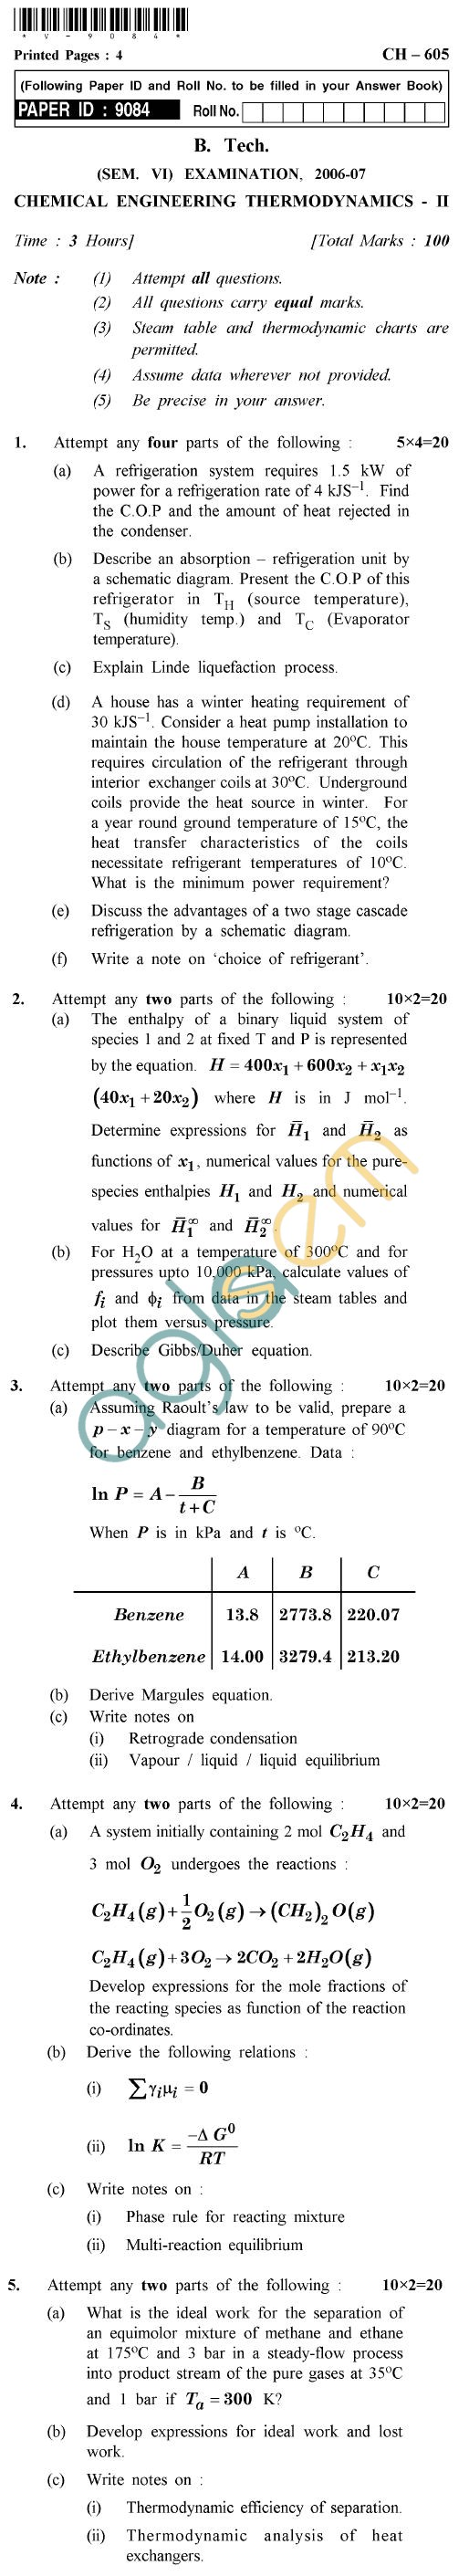 UPTU B.Tech Question Papers - CH-605 - Chemical Engineering Thermodynamics-II